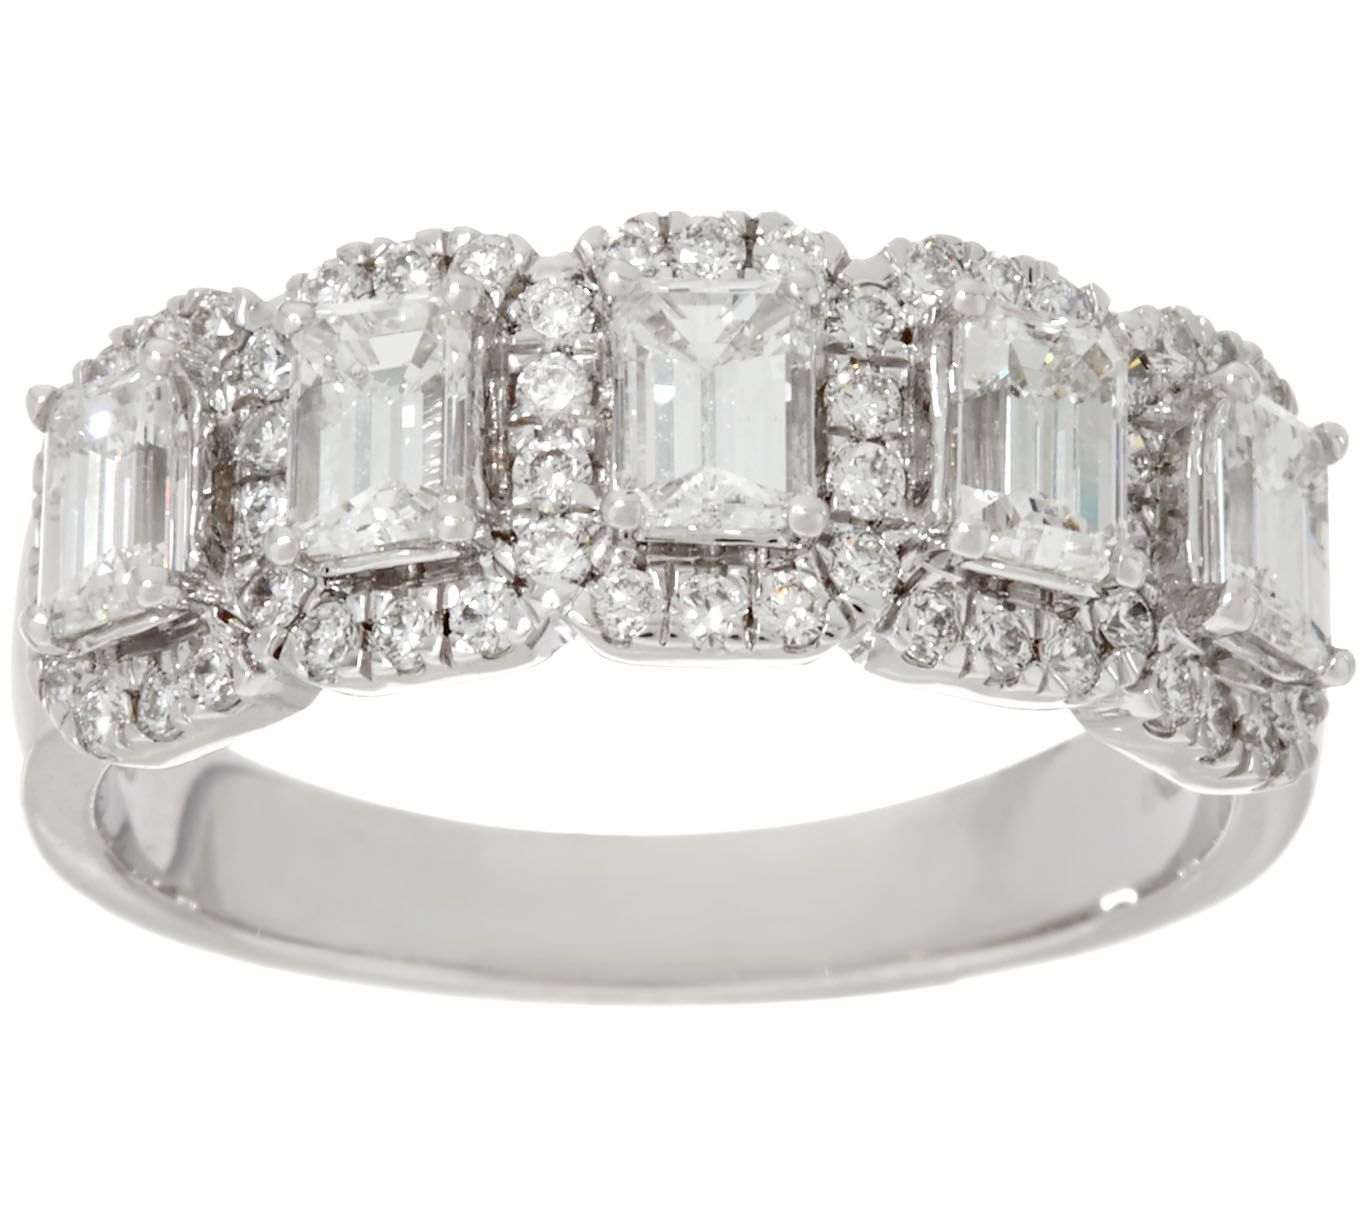 Halo 5 Stone Emerald Cut Diamond Band Ring 1 30cttw 14k Affinity Page Qvc